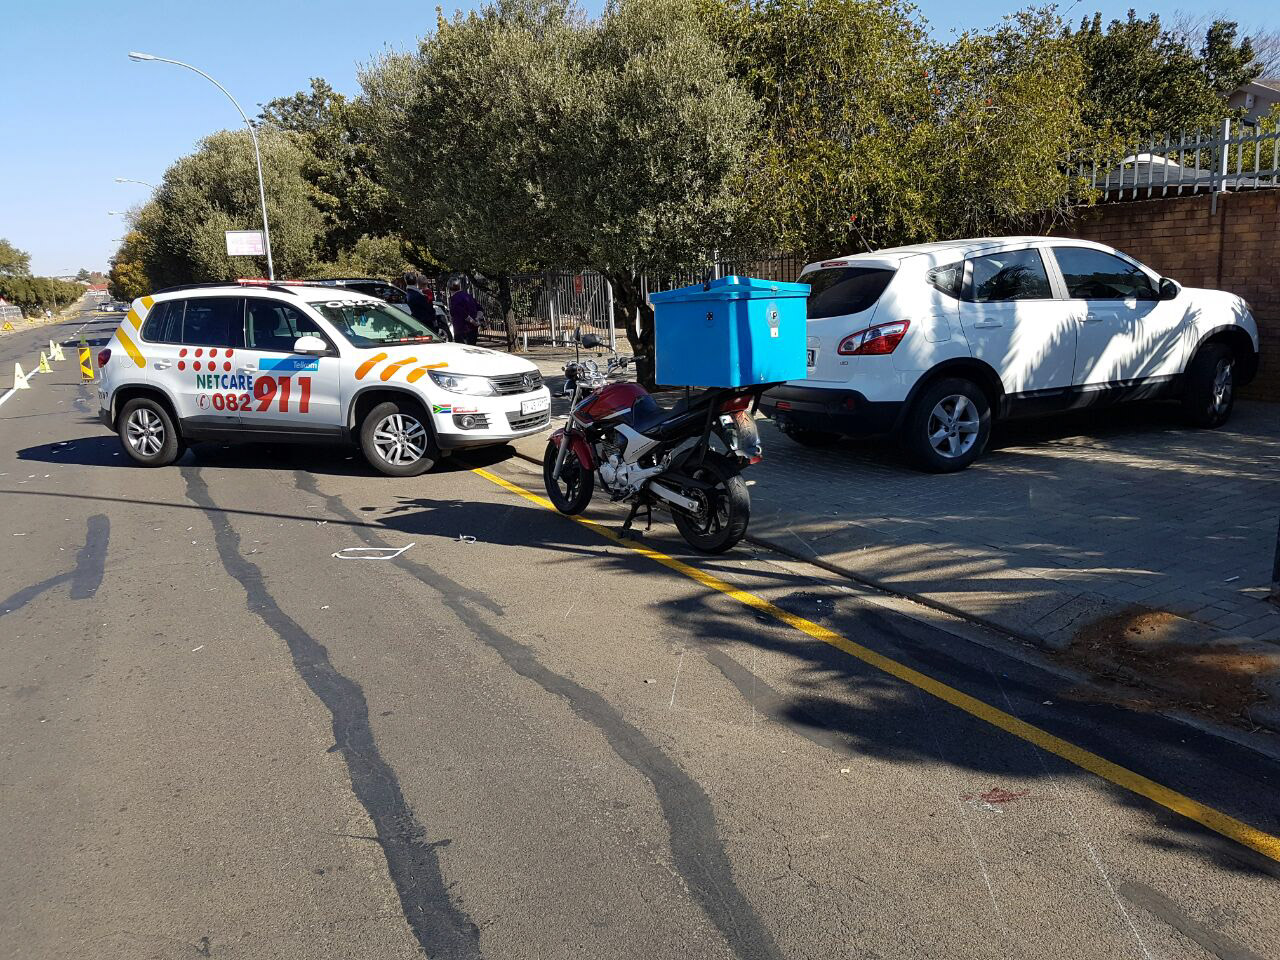 Bloemfontein: 63 year old man sustains severe leg  injuries in bike crash.